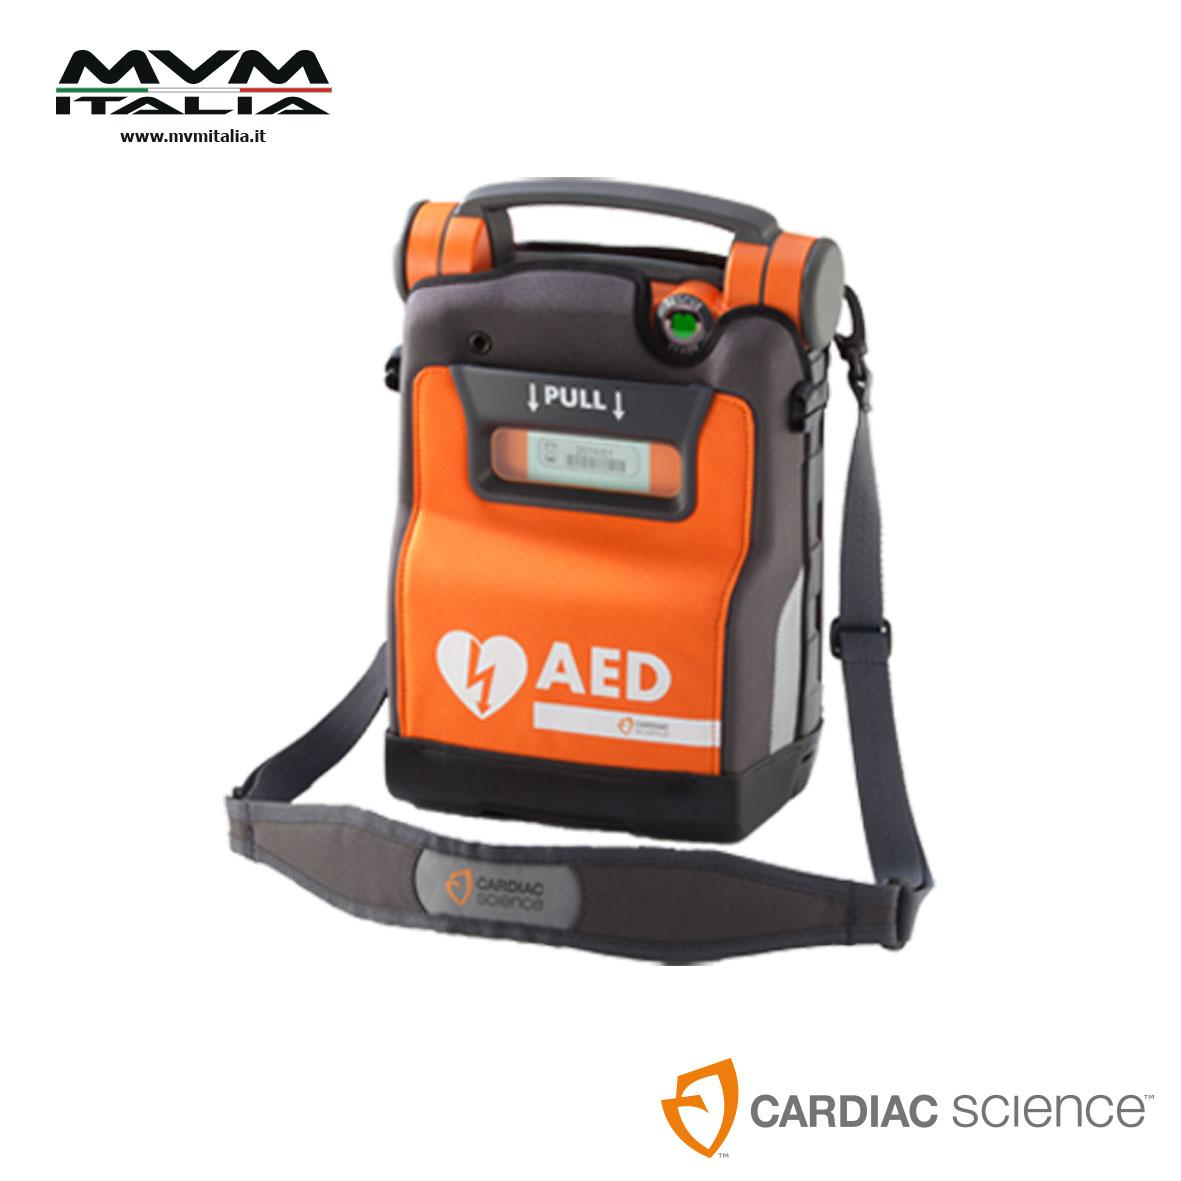 Custodia premium per defibrillatore CARDIAC science Powerheart G5